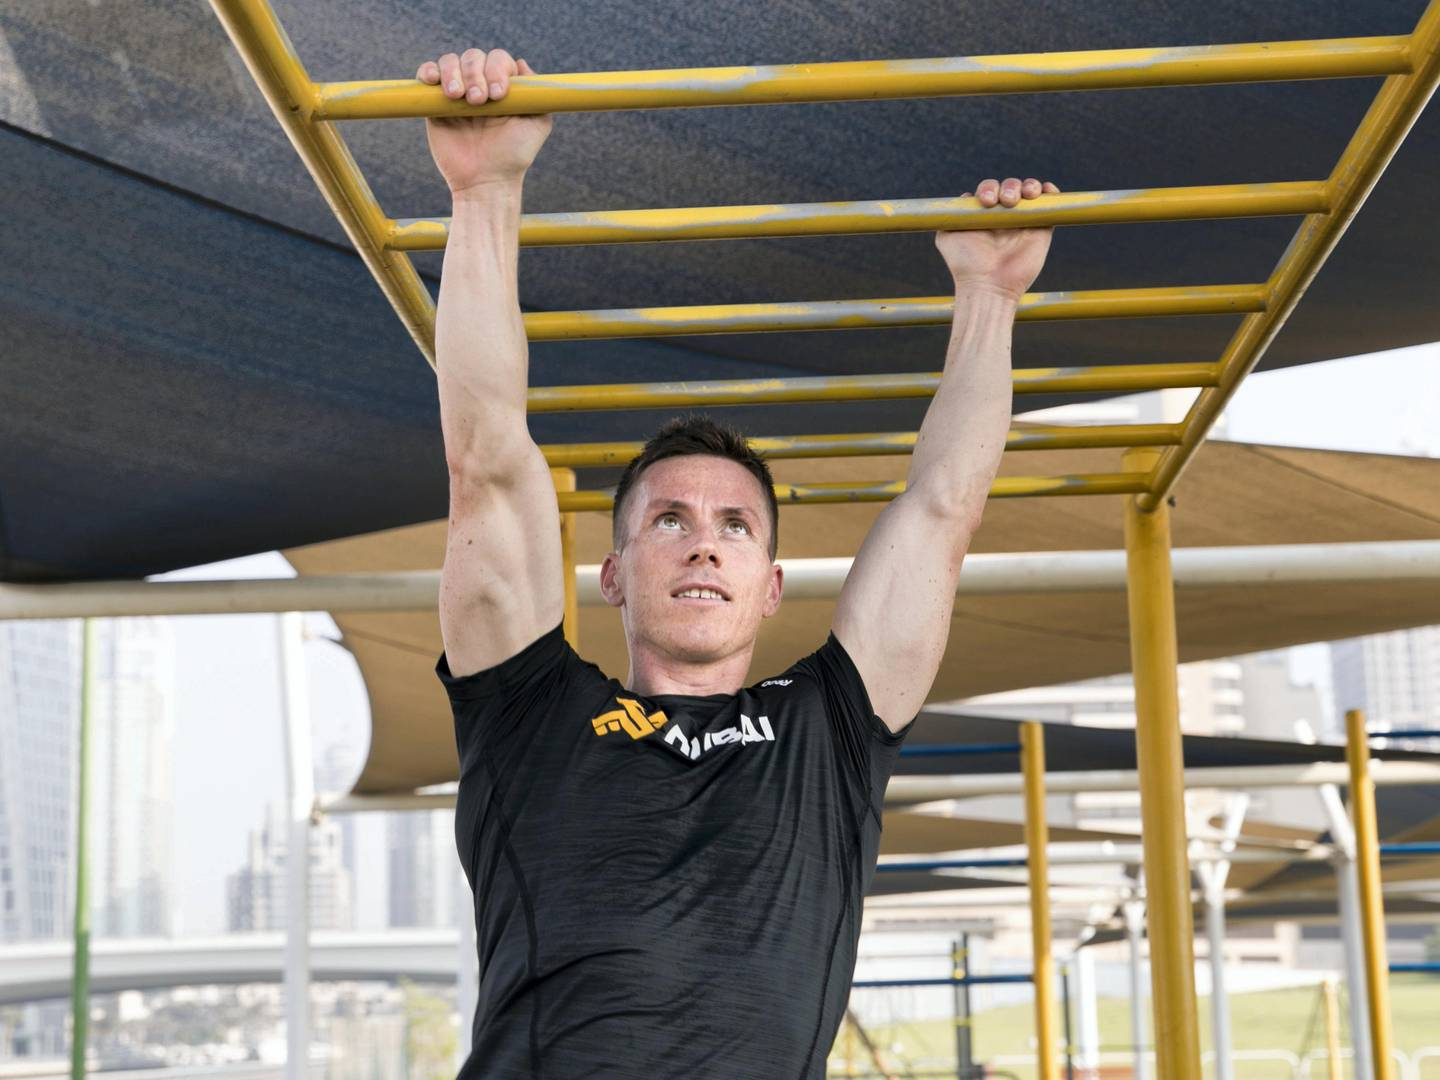 DUBAI, UNITED ARAB EMIRATES - OCT 18:Dubai based Norwegien XDubai athlete Hallvard Borsheim trains at SkyDive Dubai Athelete's park. He is encouraging people to sign up for 30 day fitness challenge. He will compete in the upcoming 2017 Spartan race in Hatta.(Photo by Reem Mohammed/The National)Reporter: Nick WebsterSection: NA